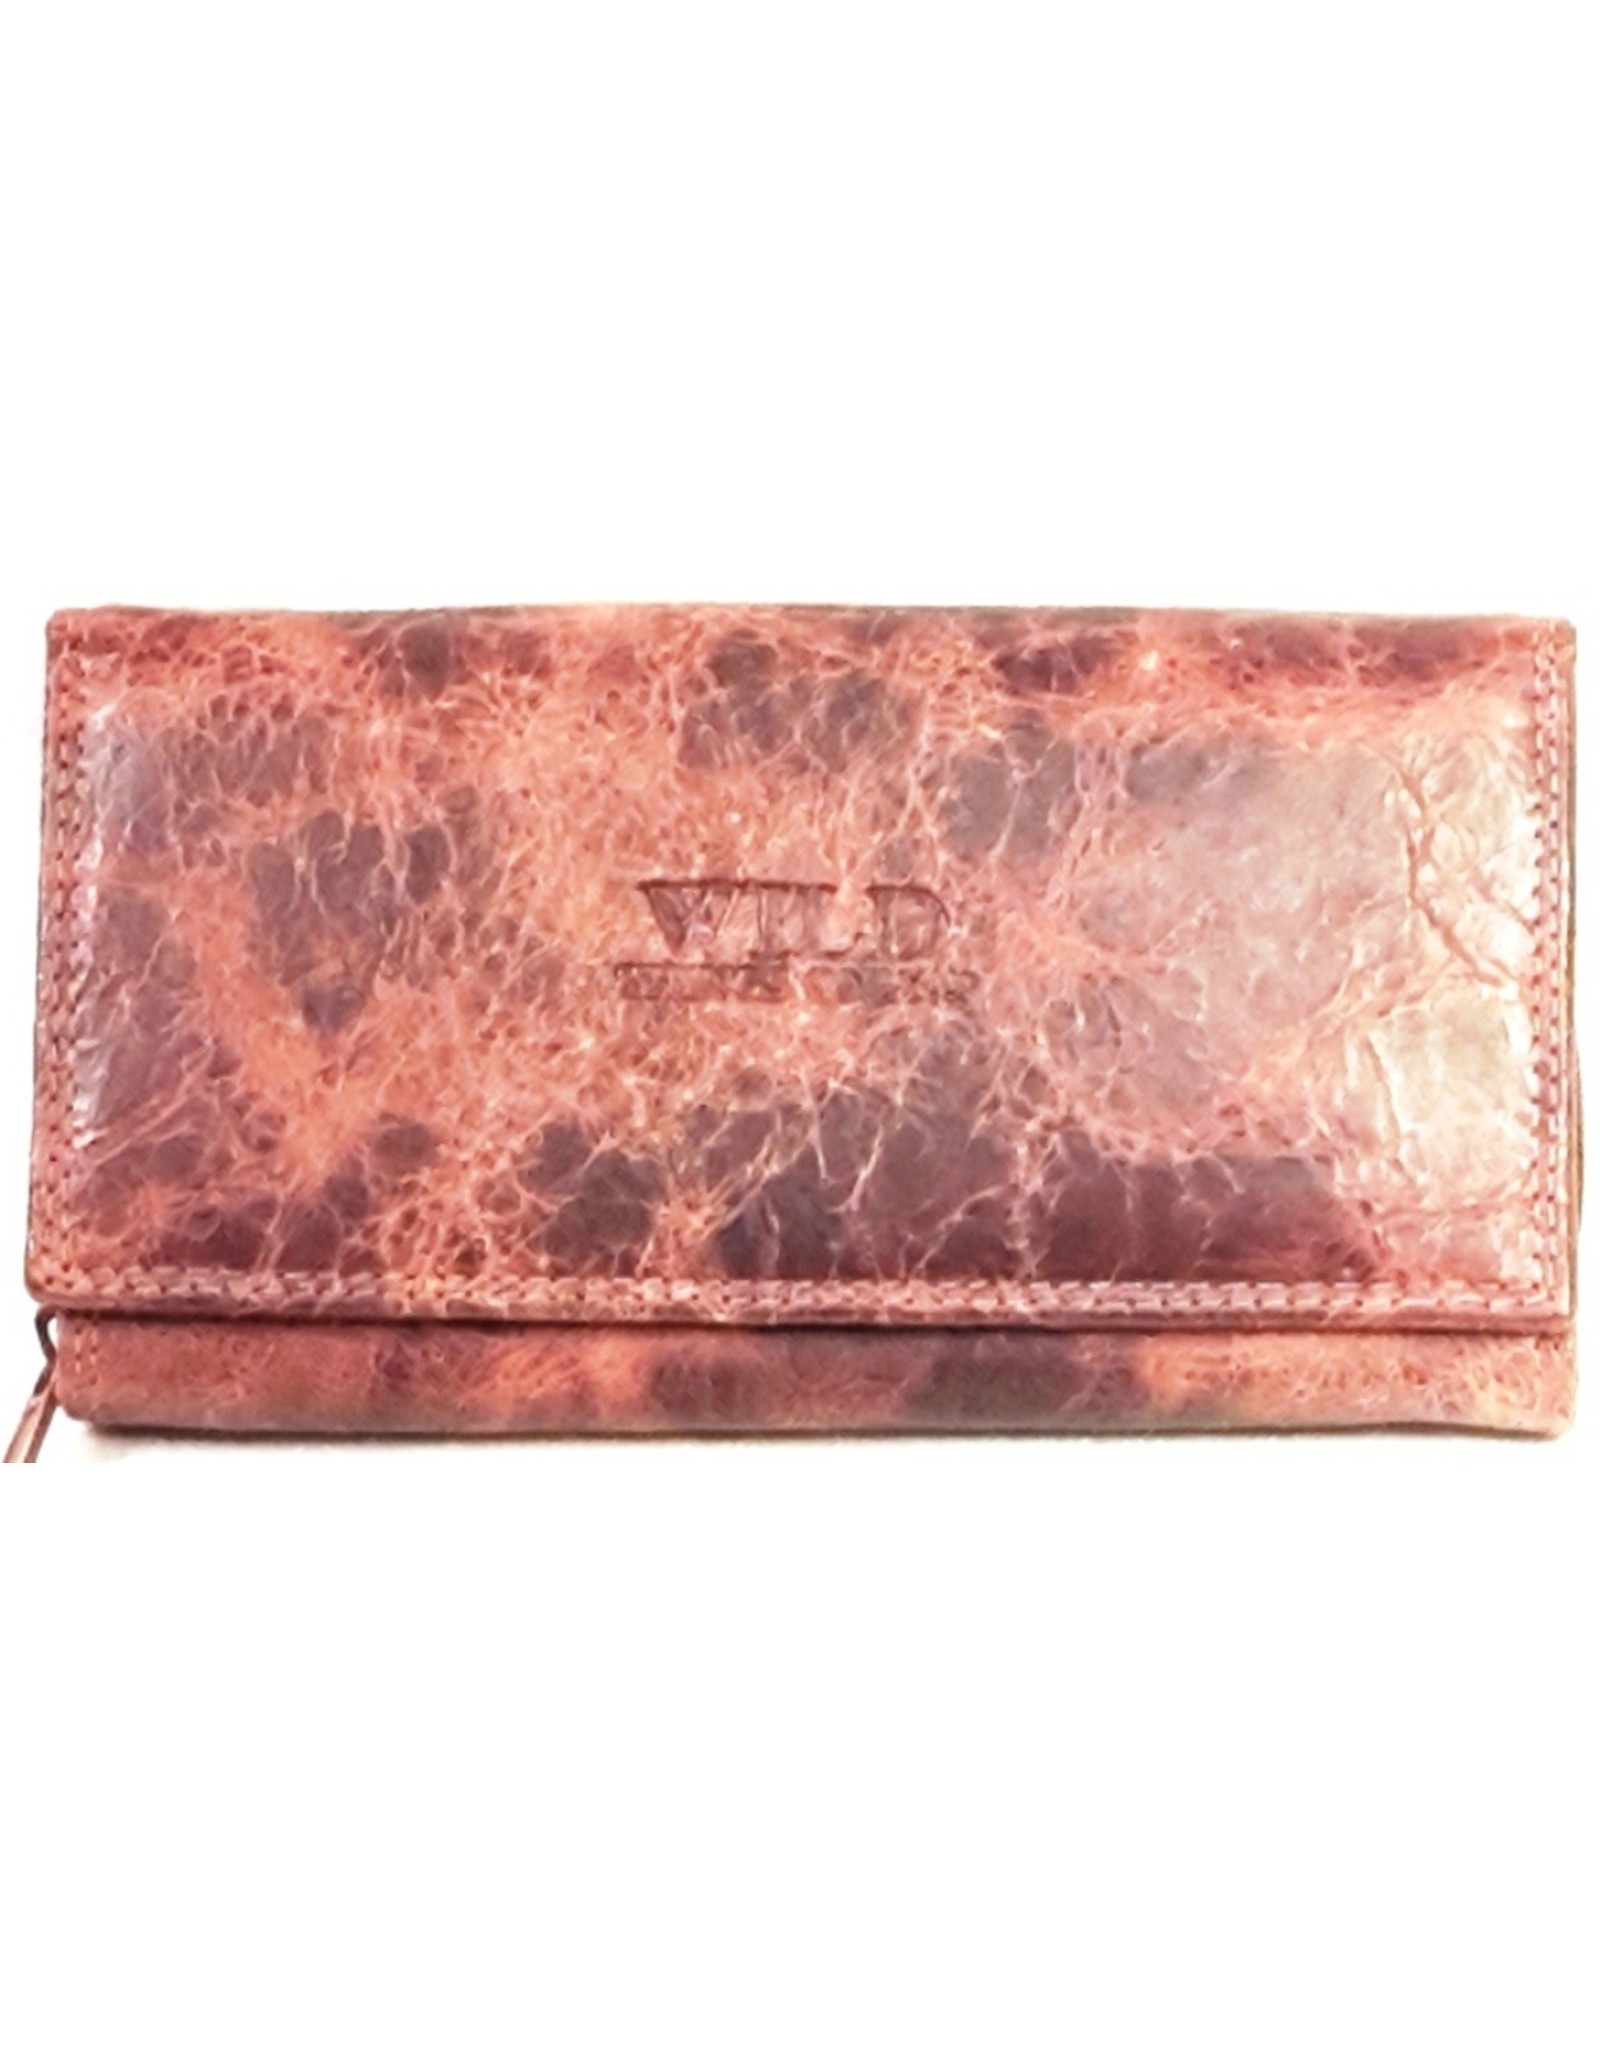 Wild Thing Leather Wallets - Leather purse Wild Thing (rust brown)